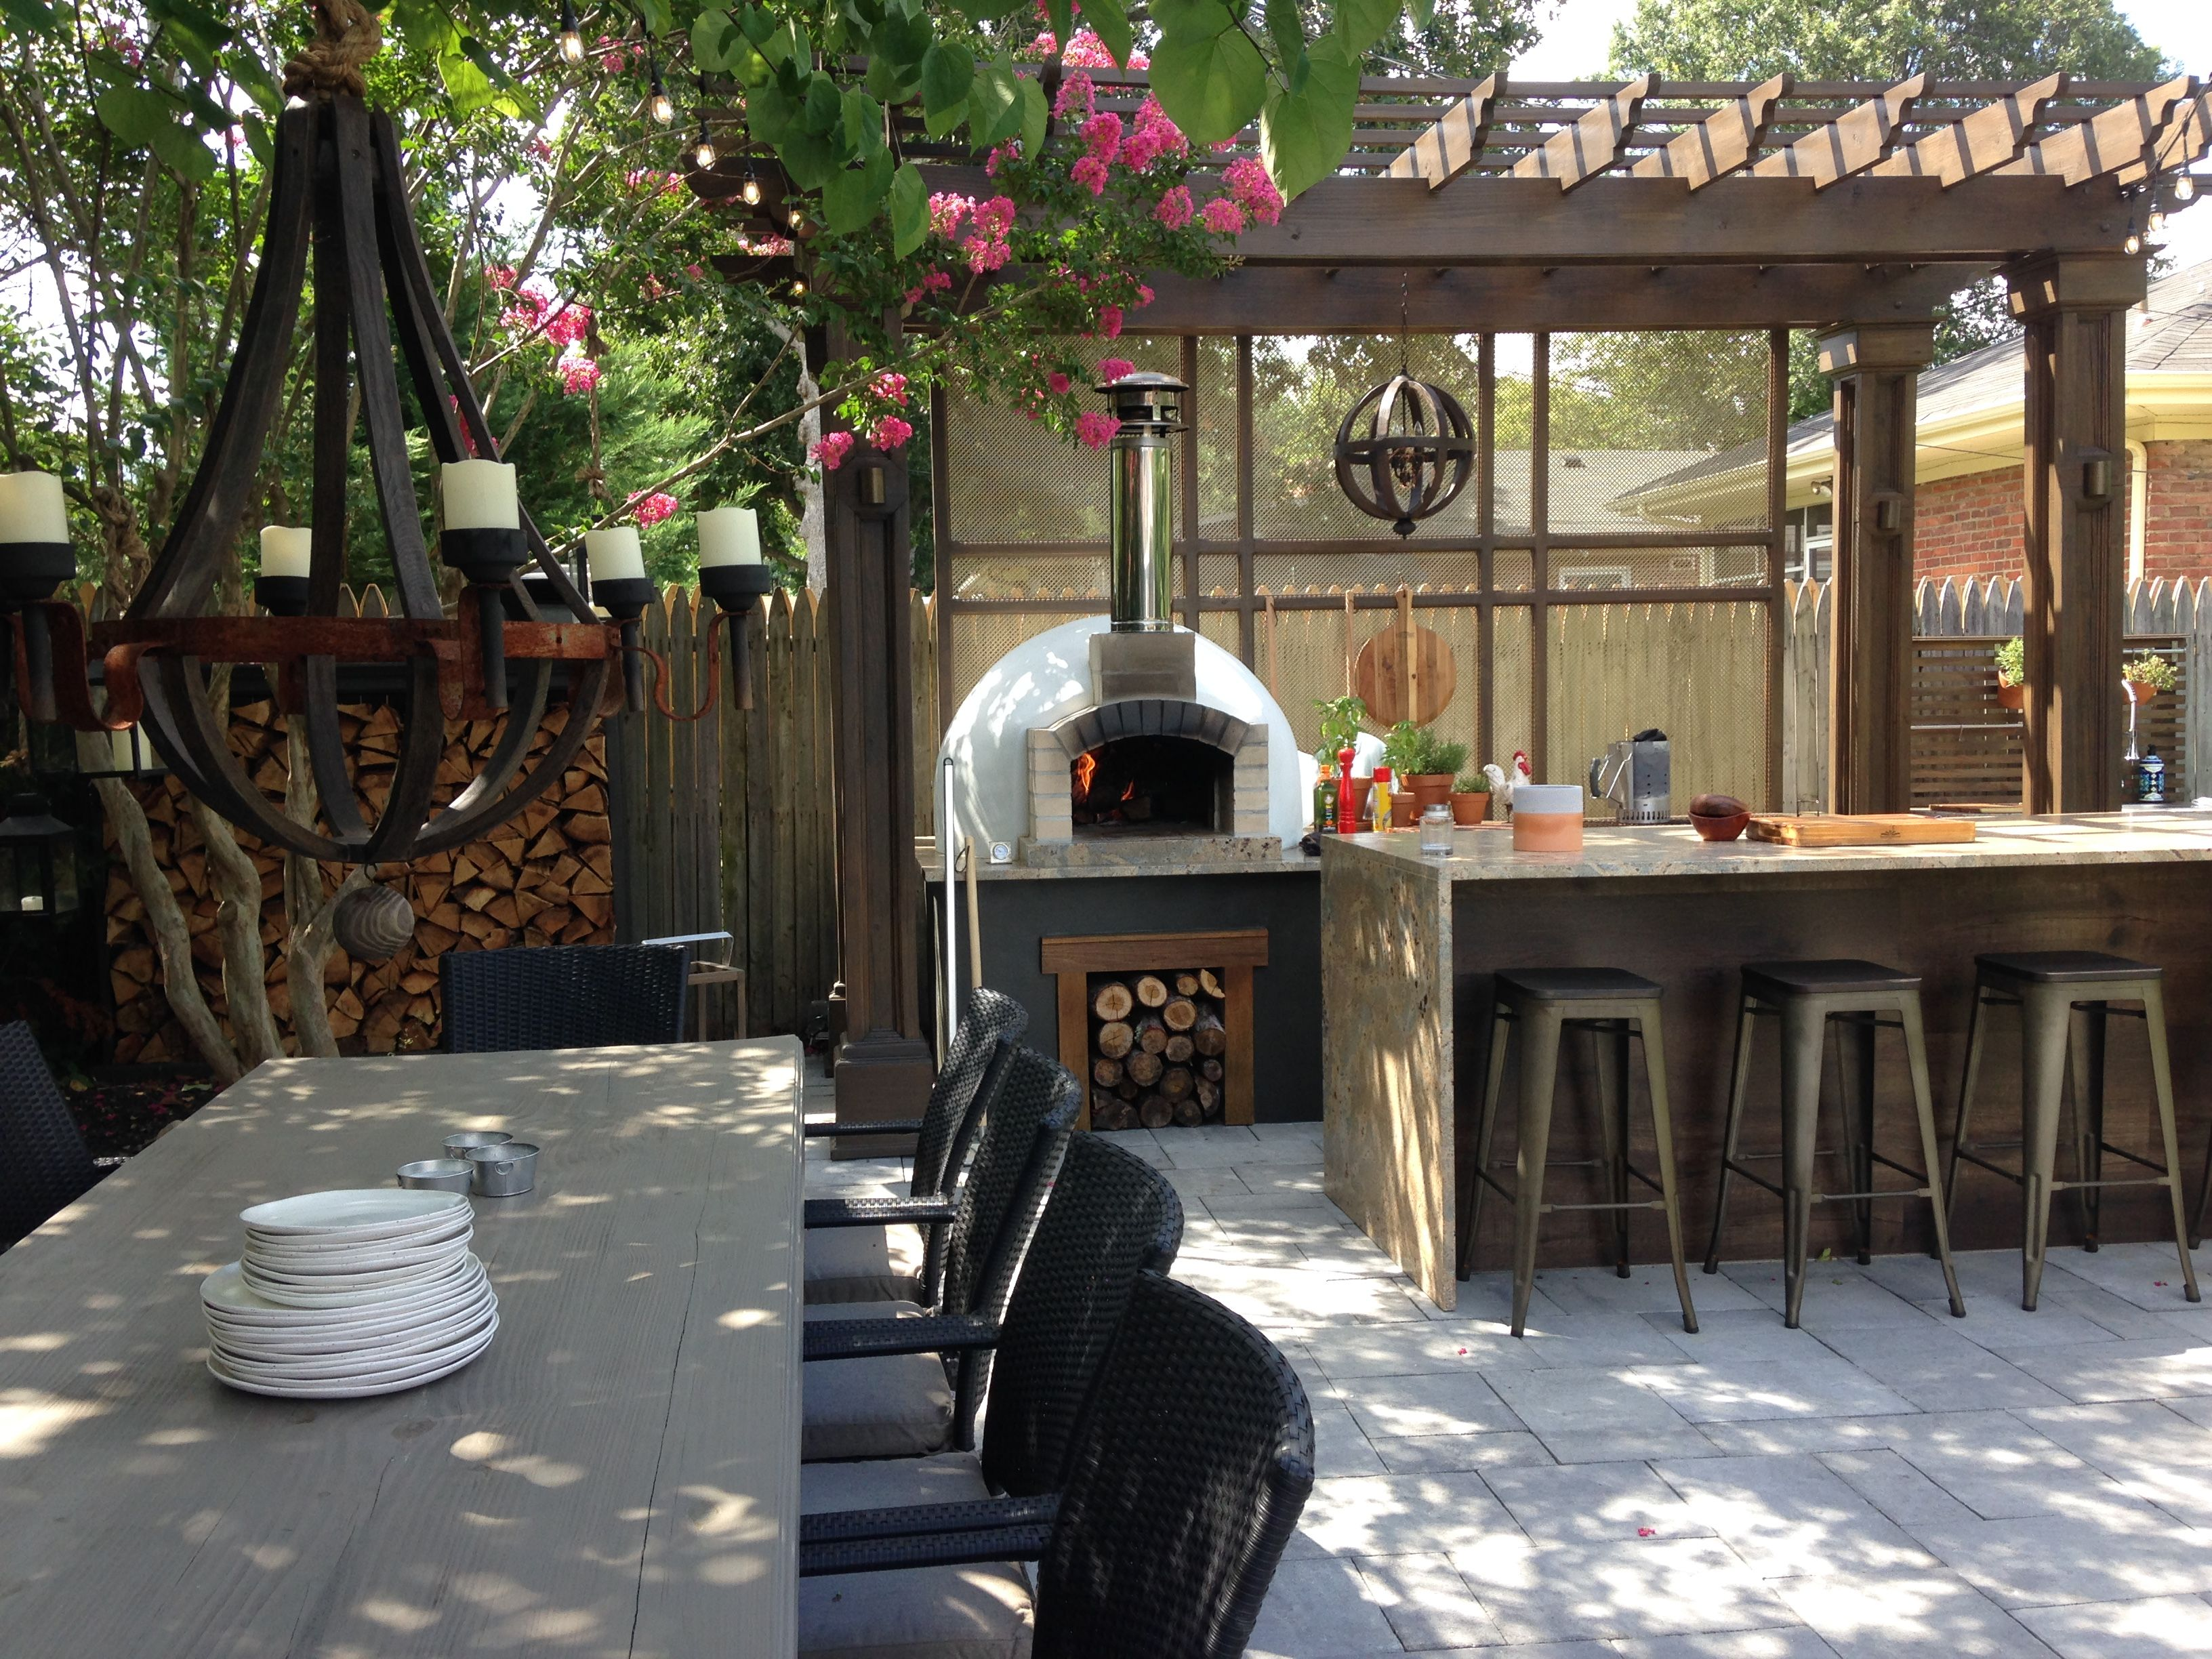 More Residential Pizza Ovens - Forno Bravo. Authentic Wood Fired Ovens